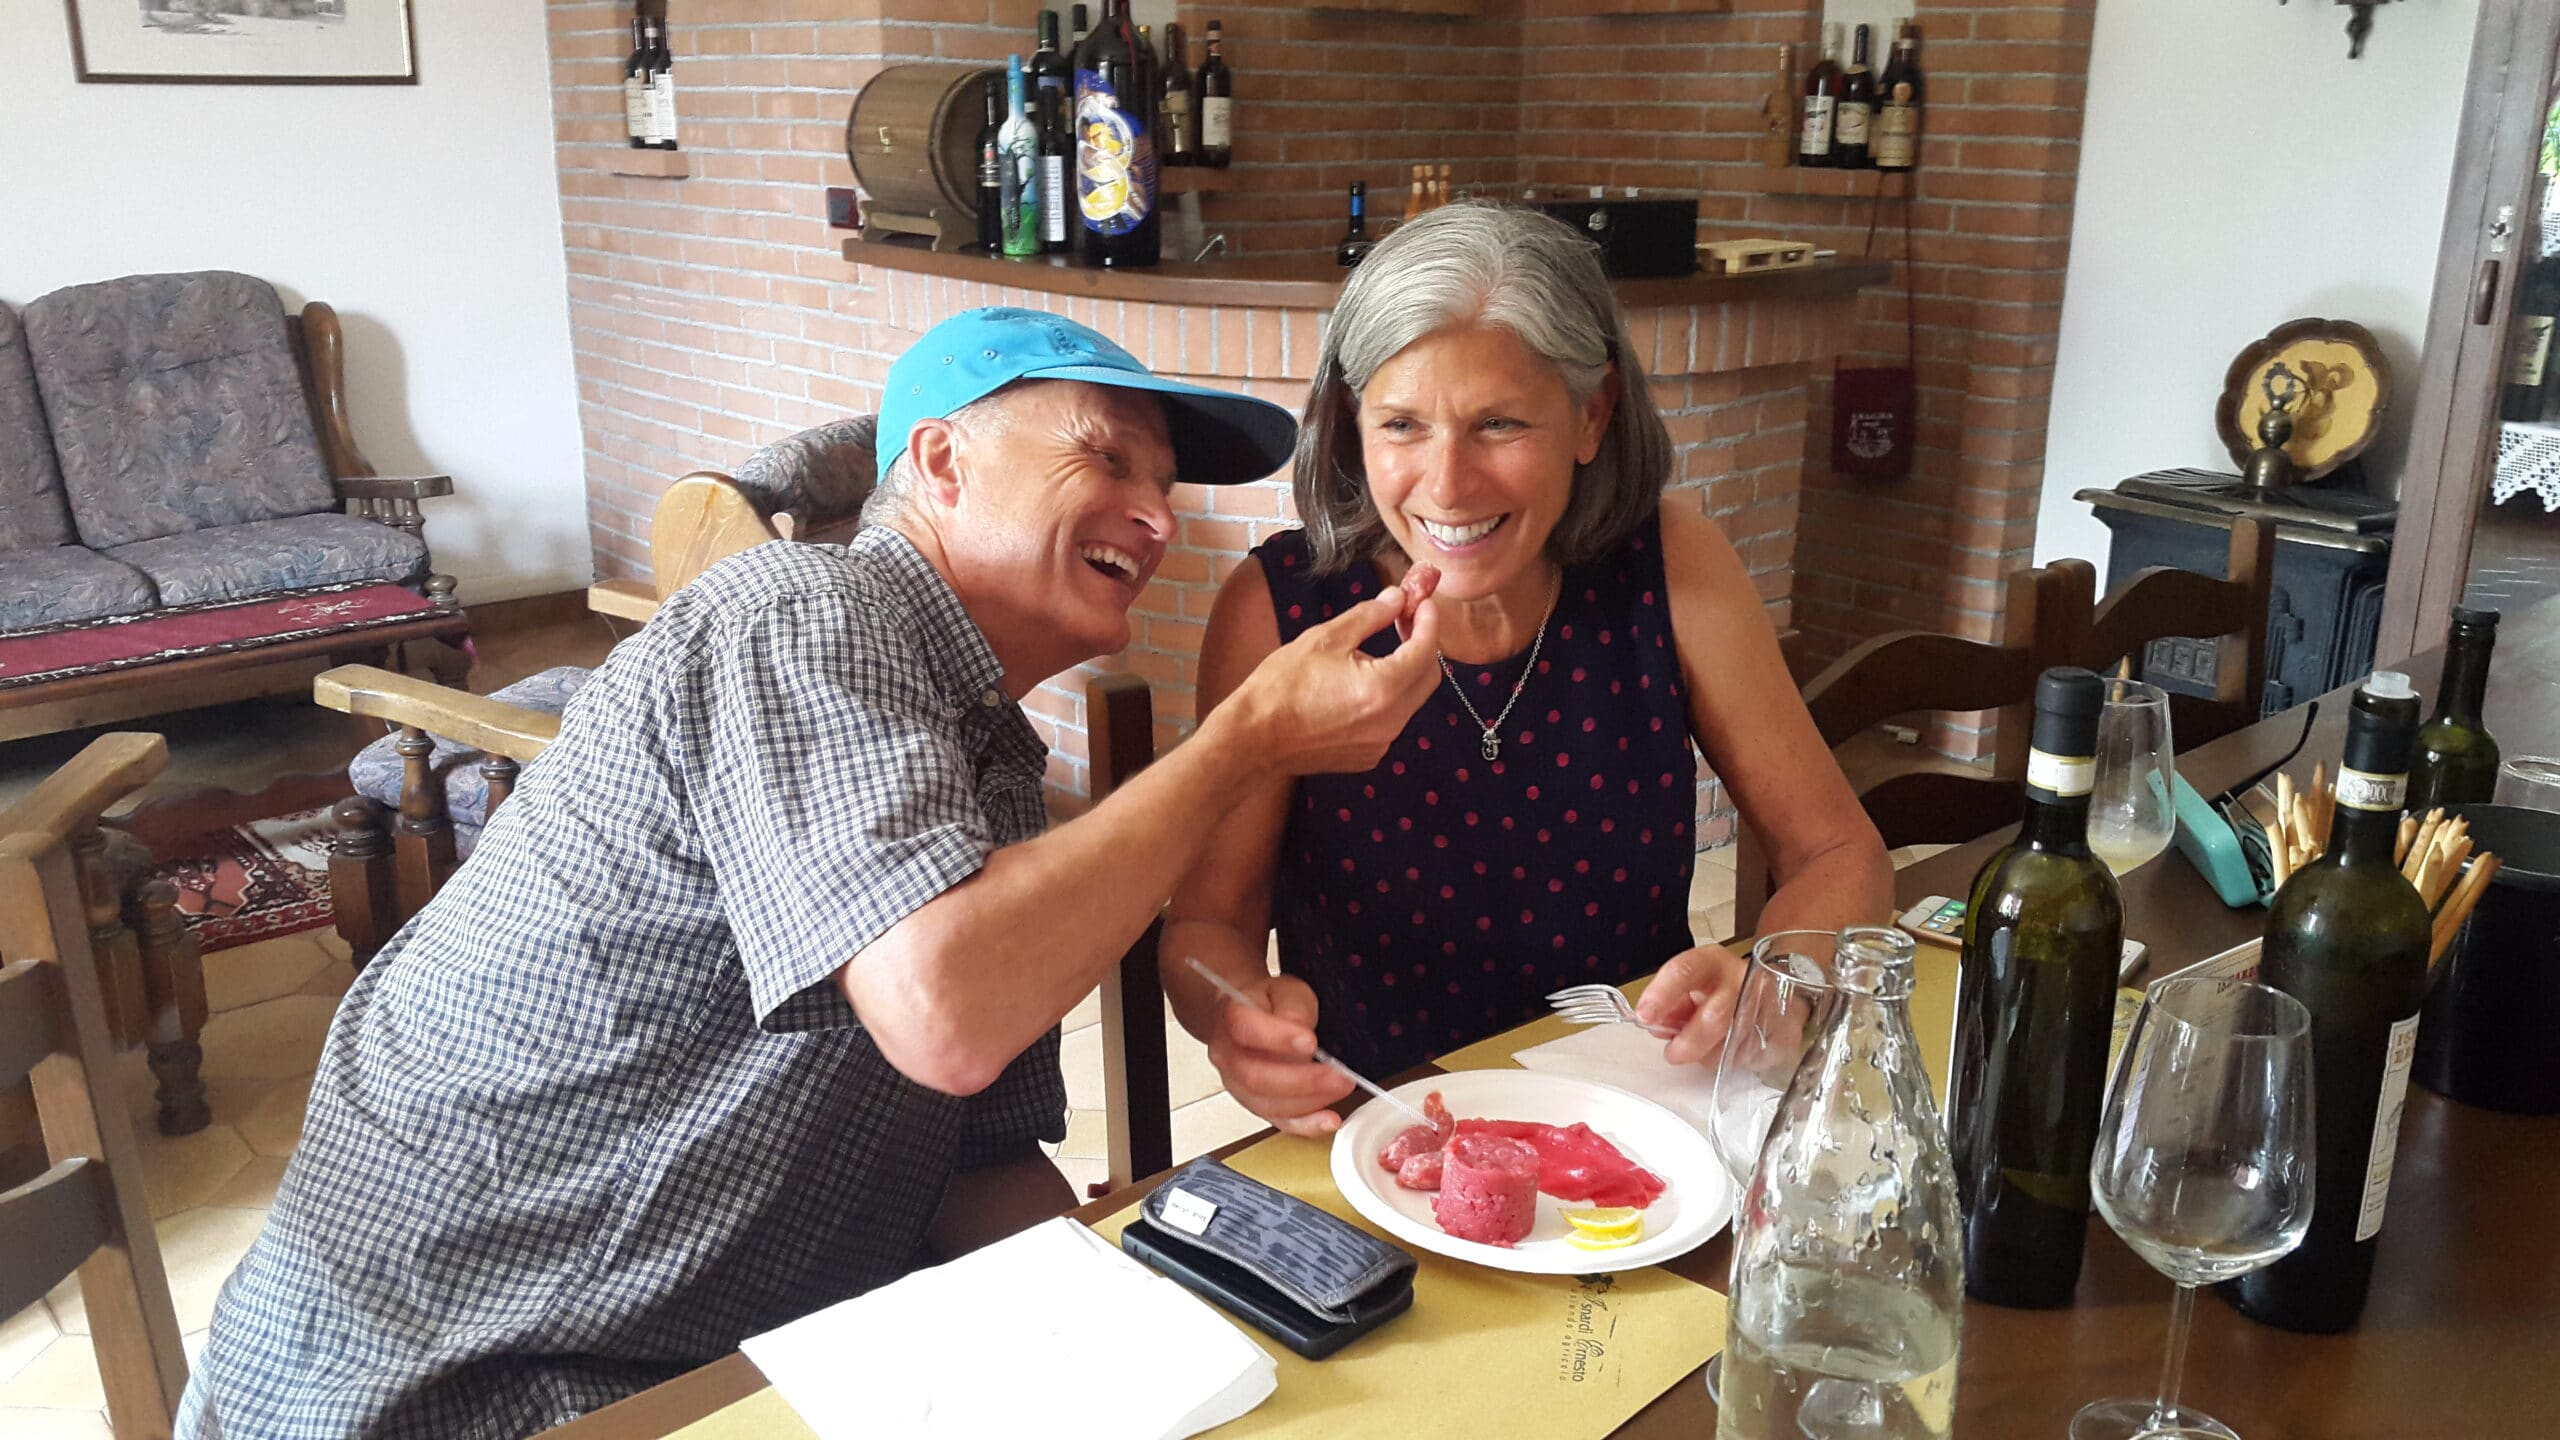 Wine tasting with raw meat in Piemonte at my friend's Andrea (butcher and wine maker)